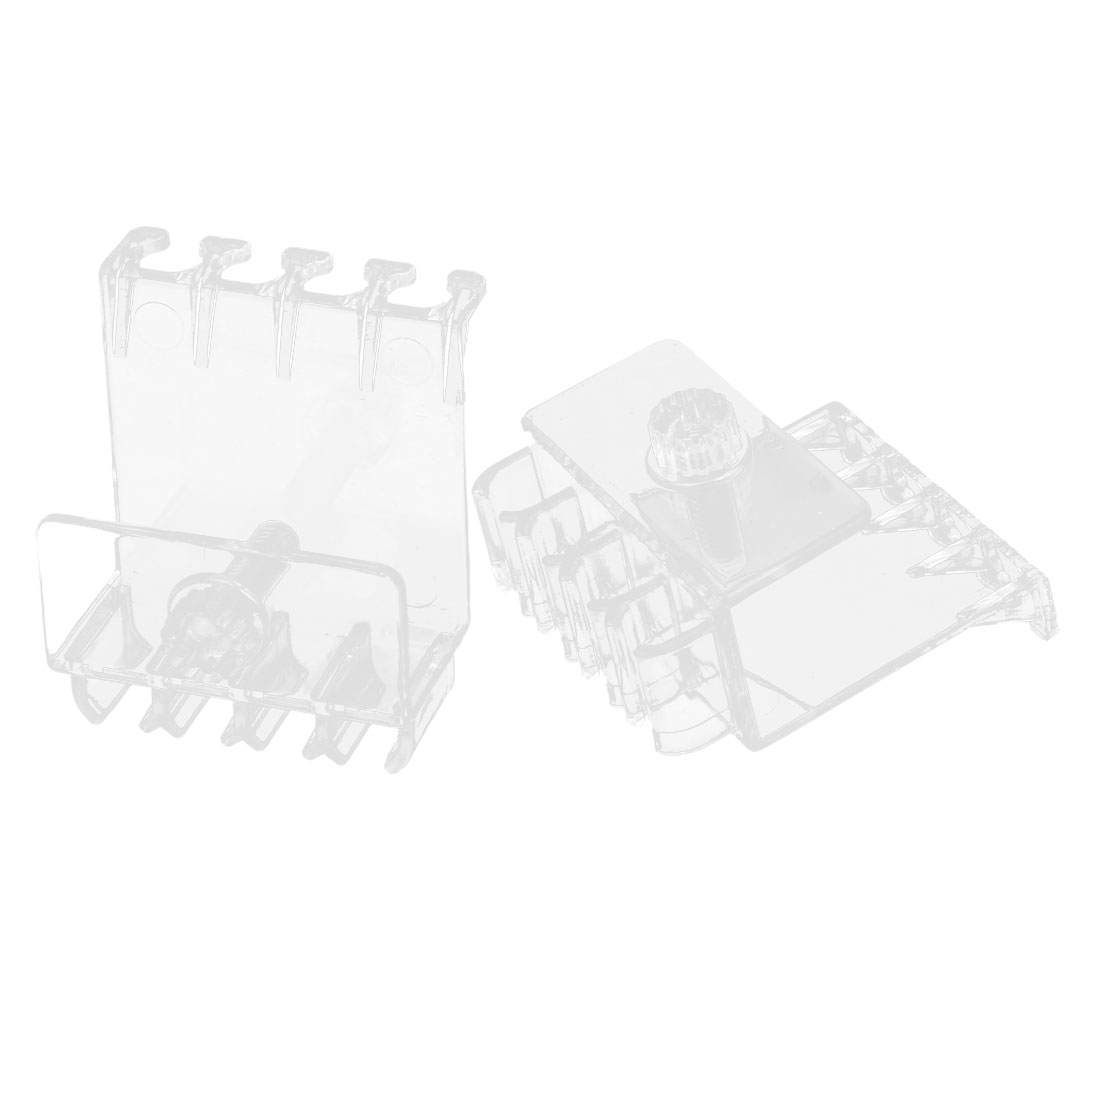 2 Pcs Clear Plastic Air Hose Pipe Tube Hanger Fixed Slot Holder for Aquarium Tank